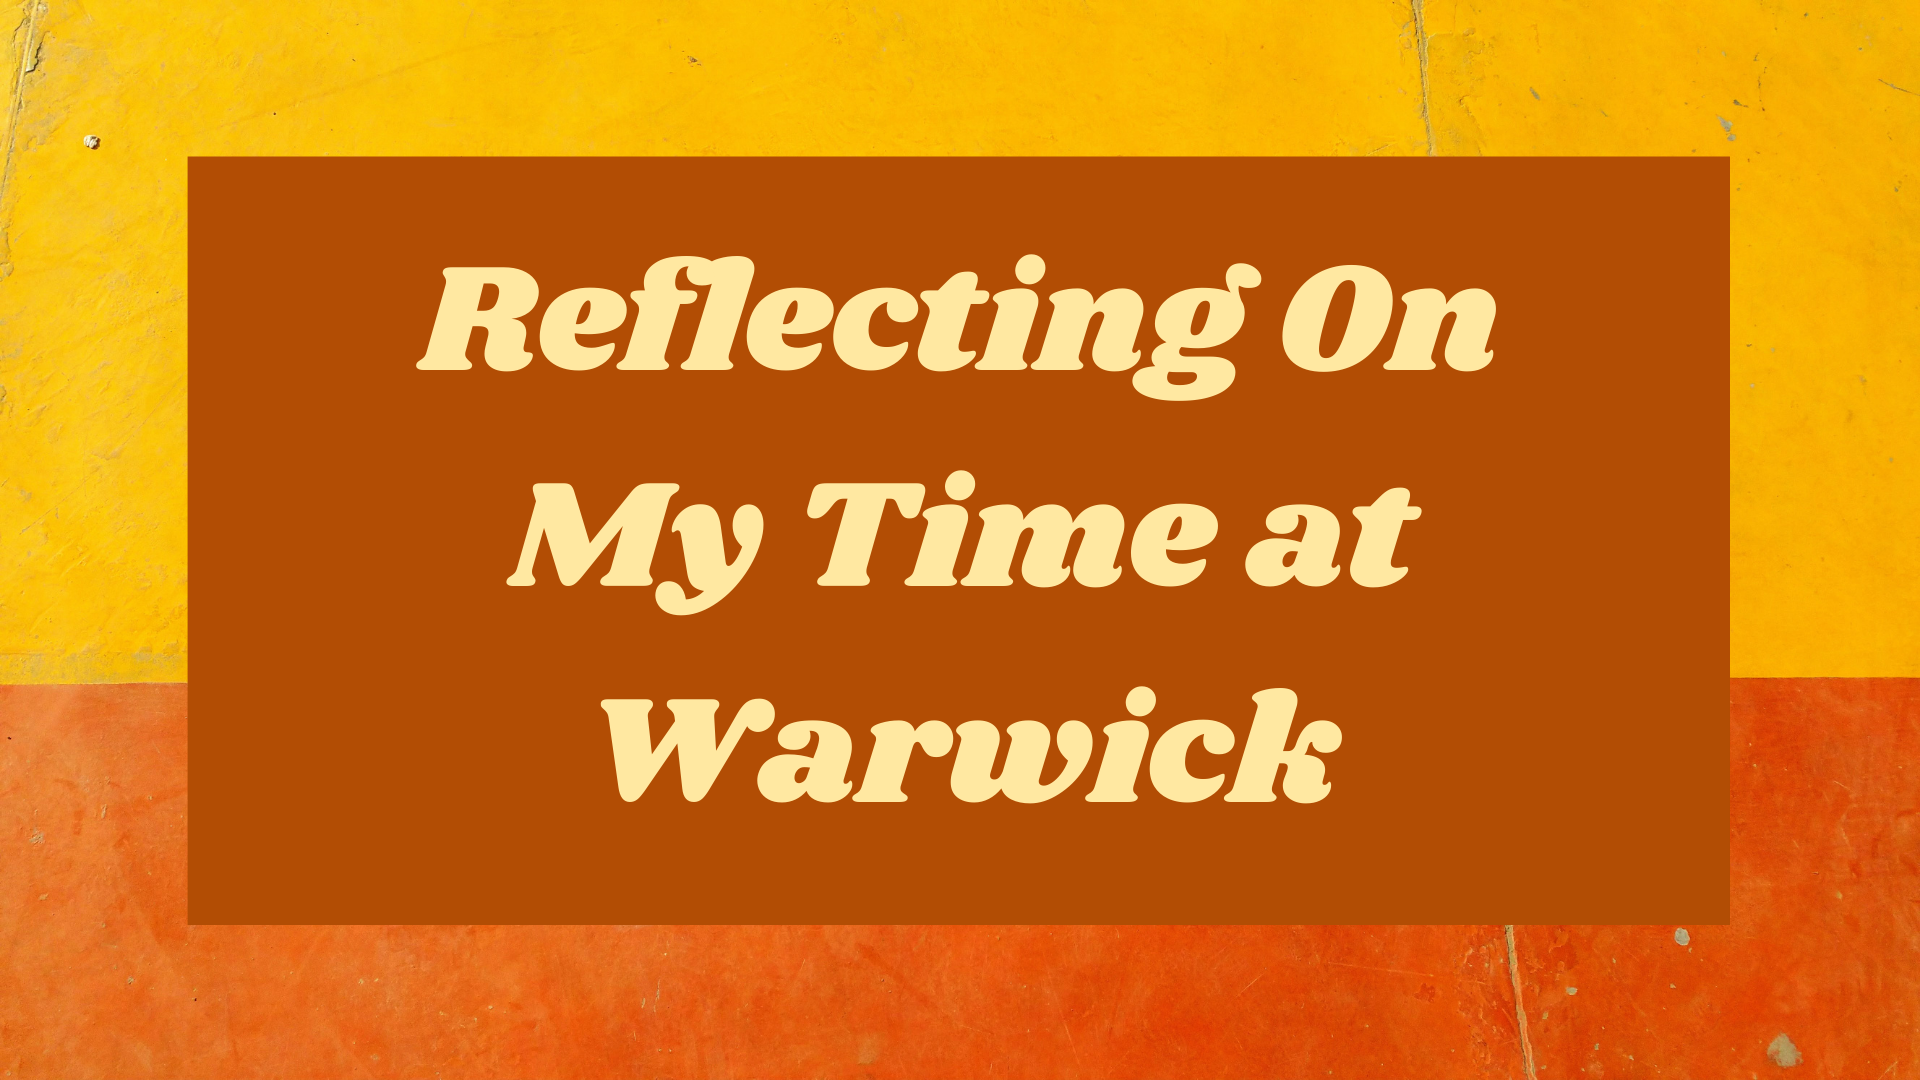 Reflecting On My Time at Warwick